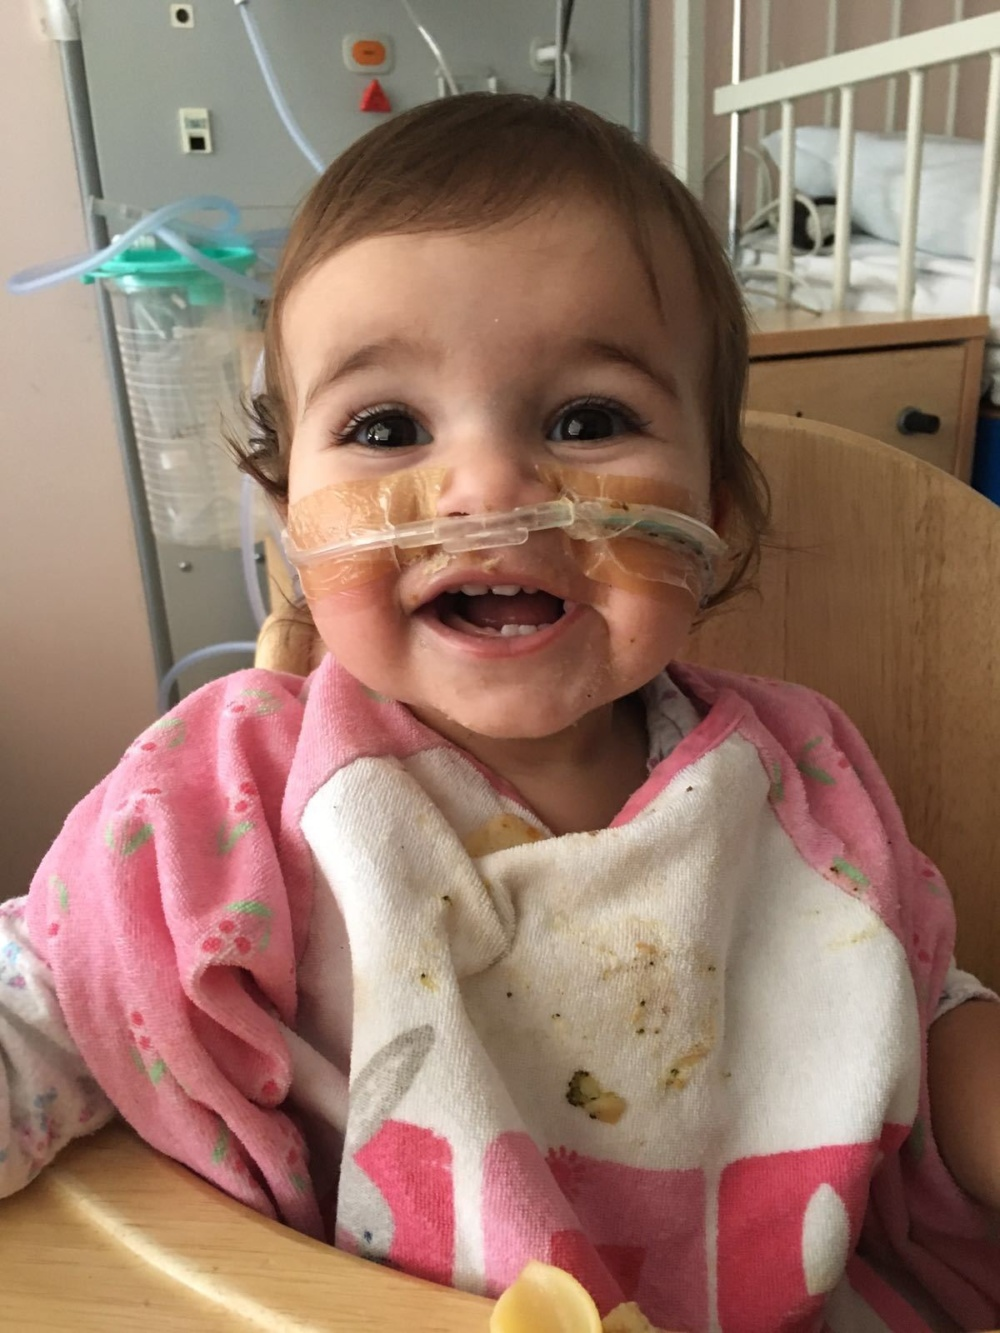 Baby sitting in chair and smiling in hospital while receiving treatment